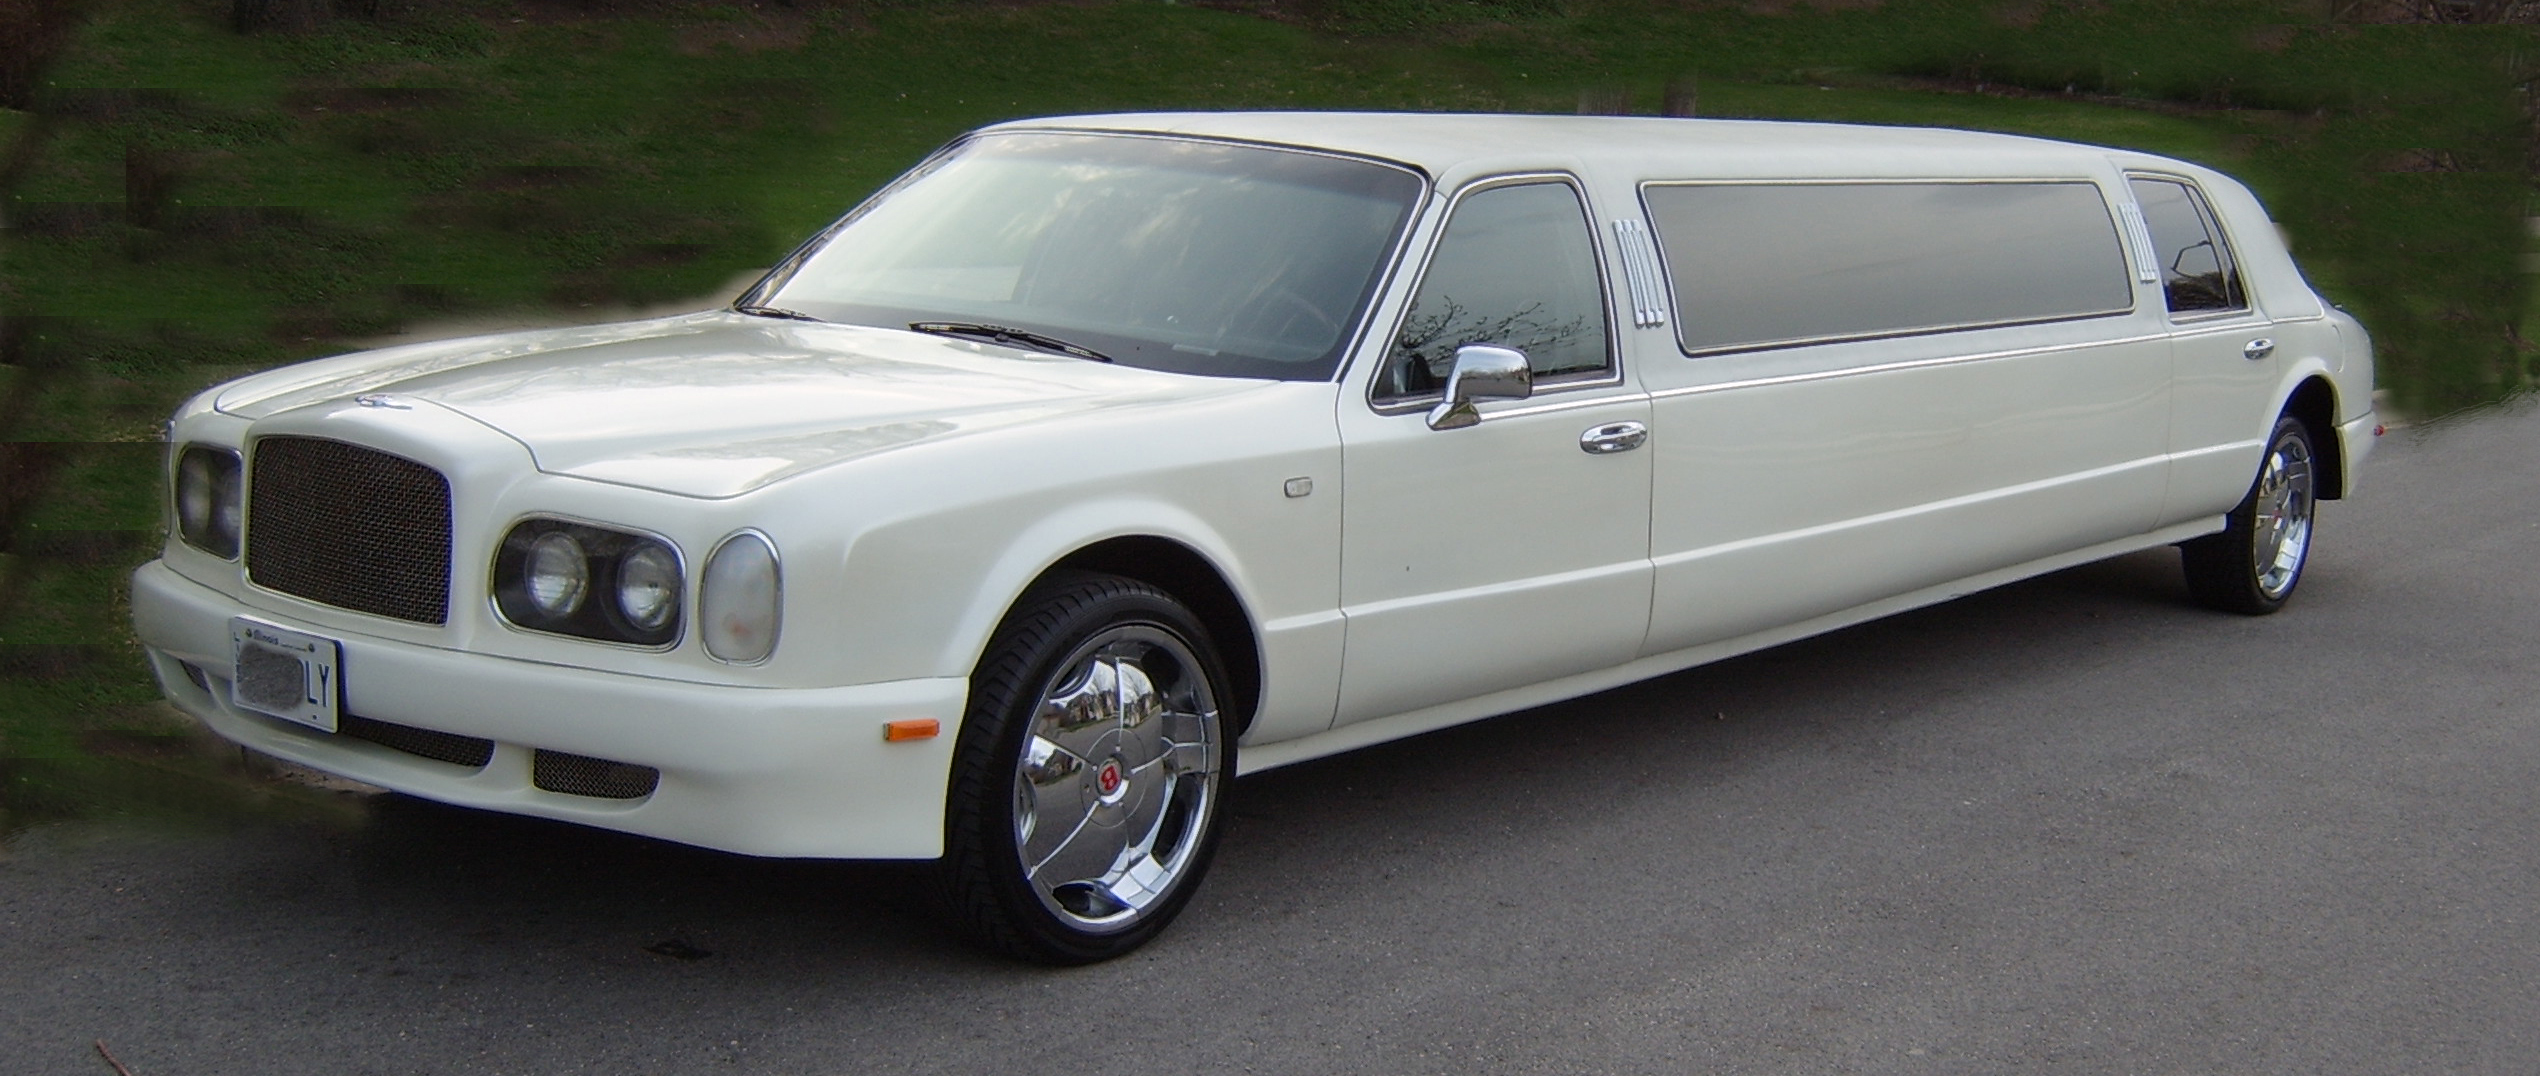 Pickering Limo Services